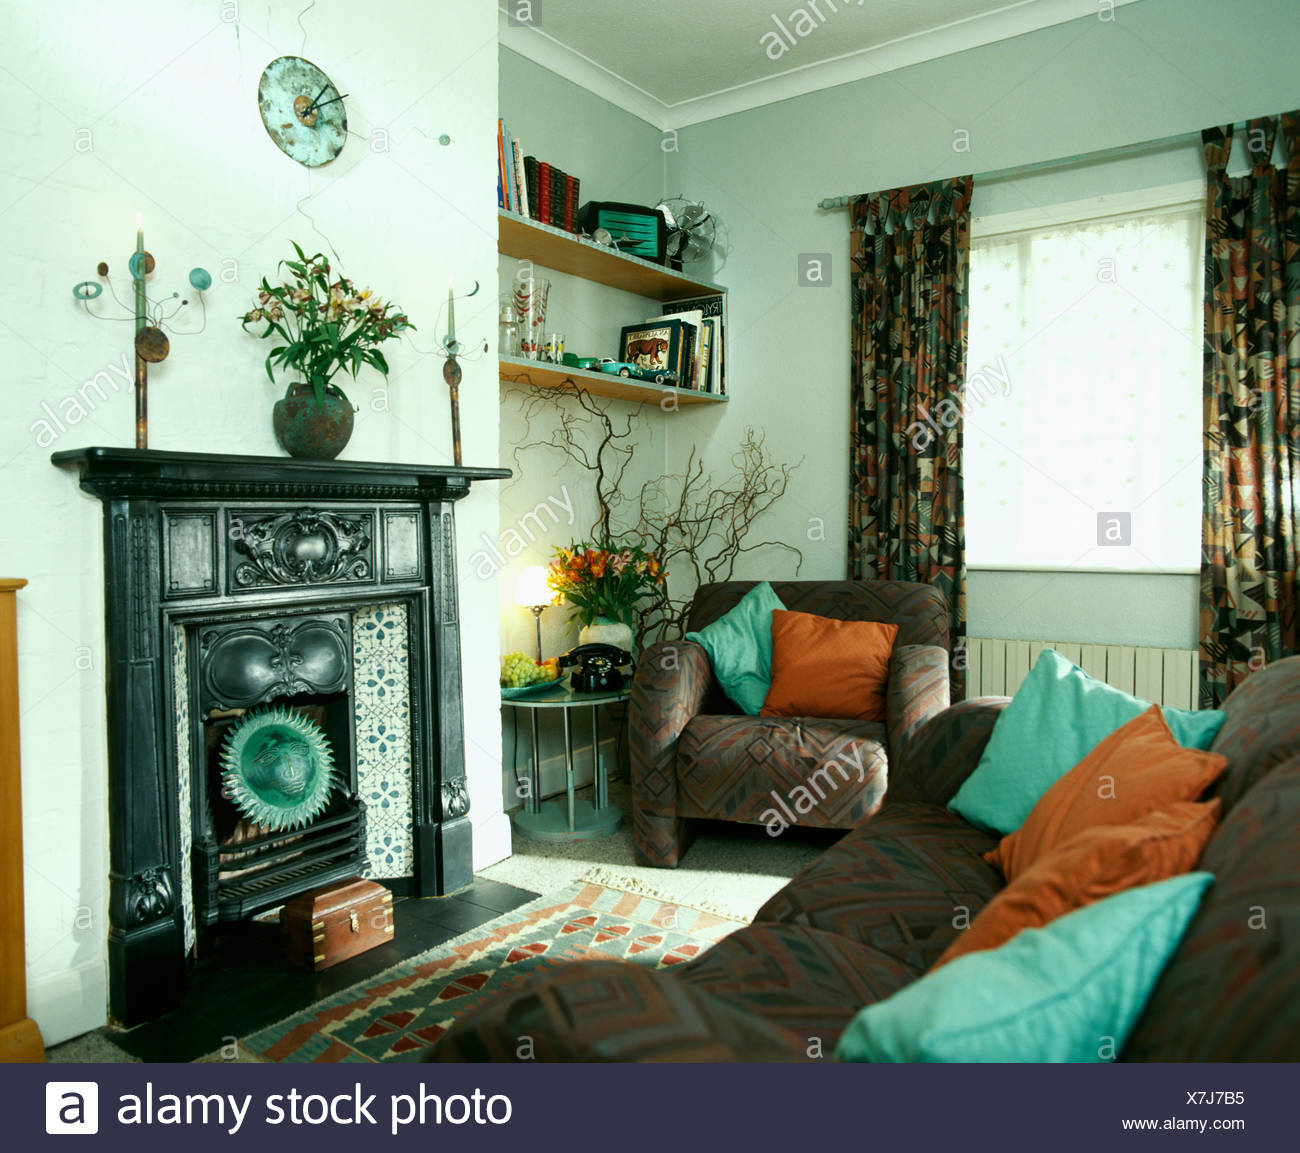 Turquoise And Orange Cushions On Brown Sofas In Front Of Sofas In